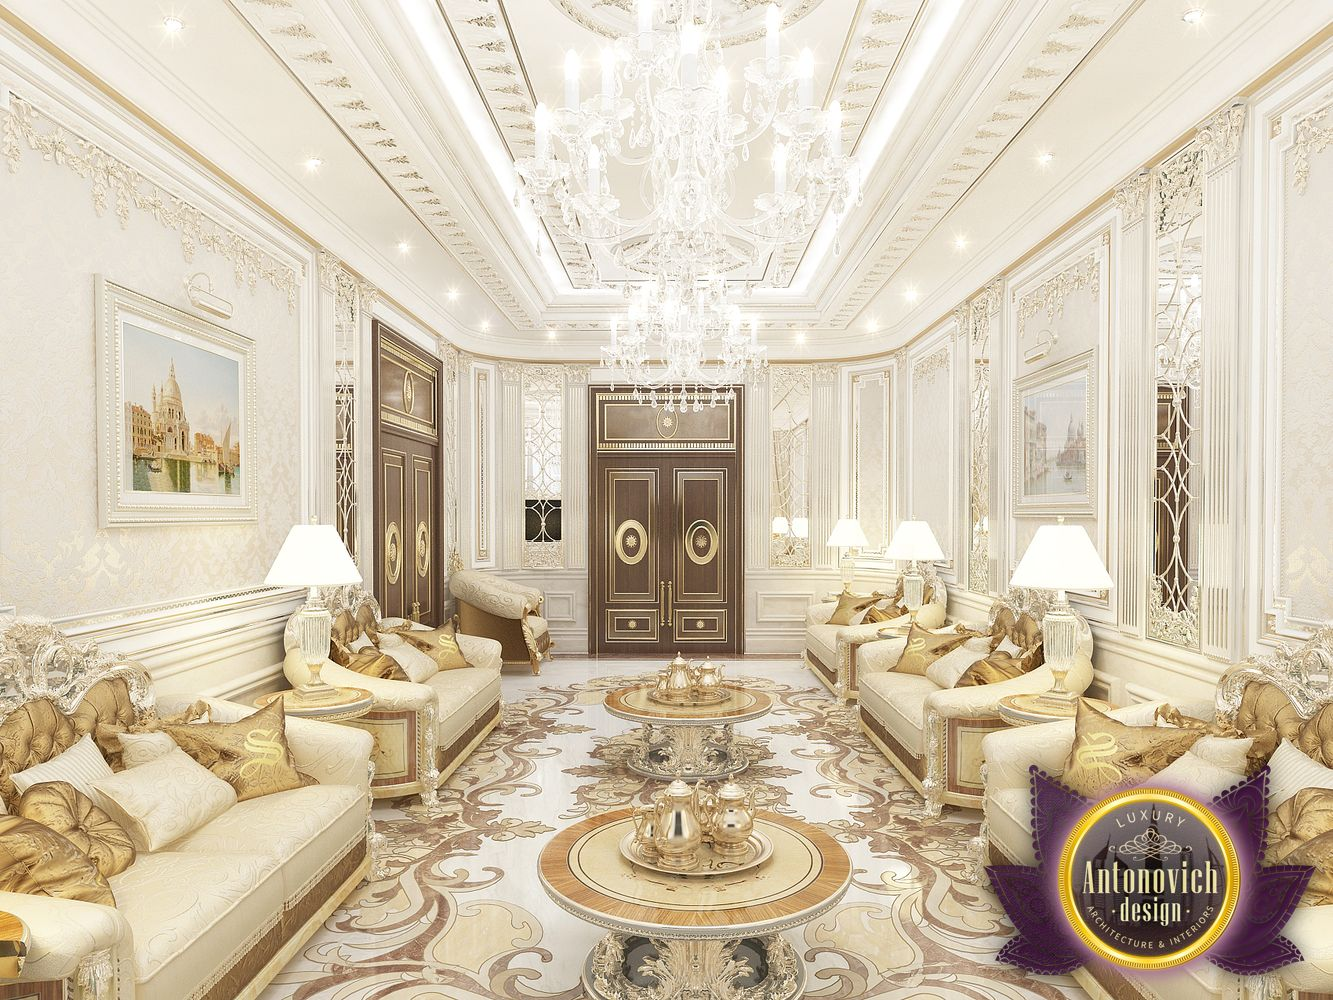 Luxury antonovich design uae living room interior design for Top luxury interior designers